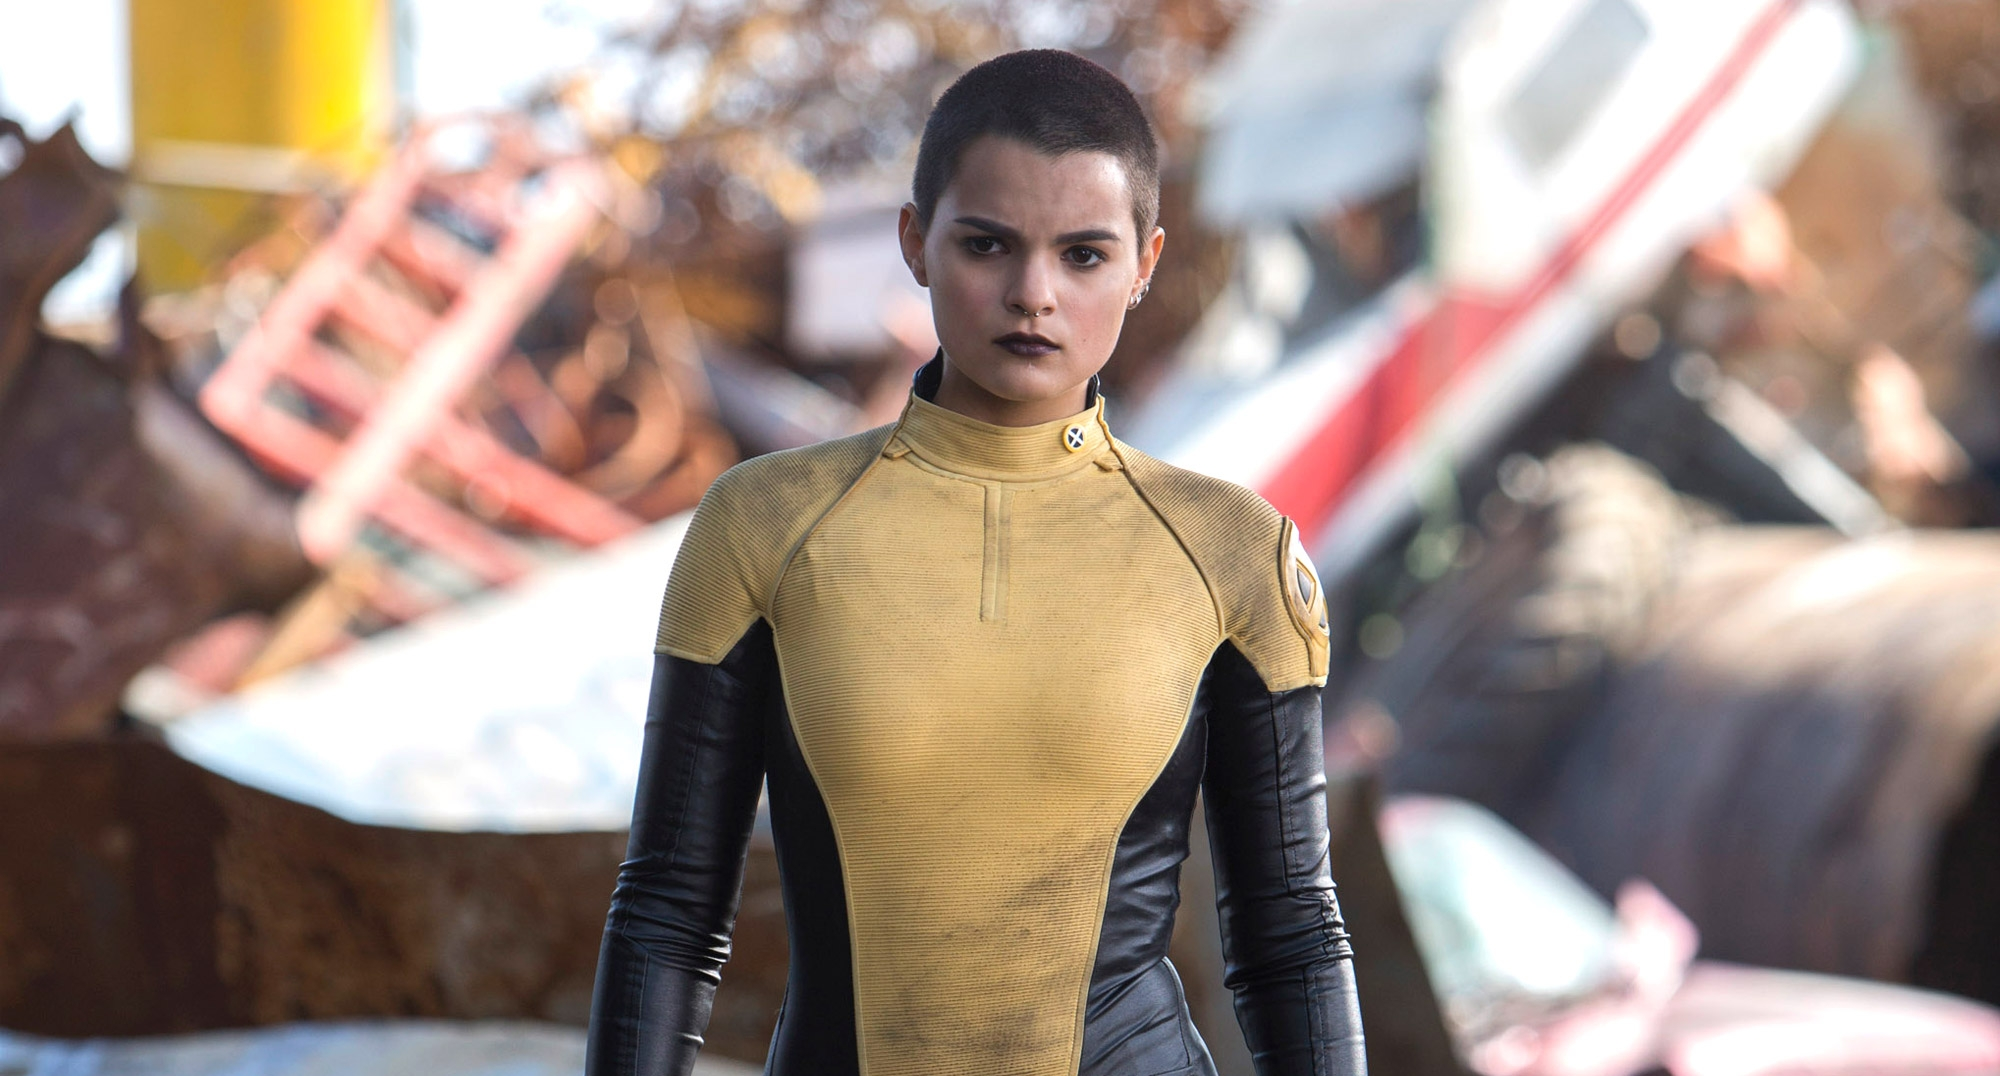 Negasonic Teenage Warhead in Deadpool